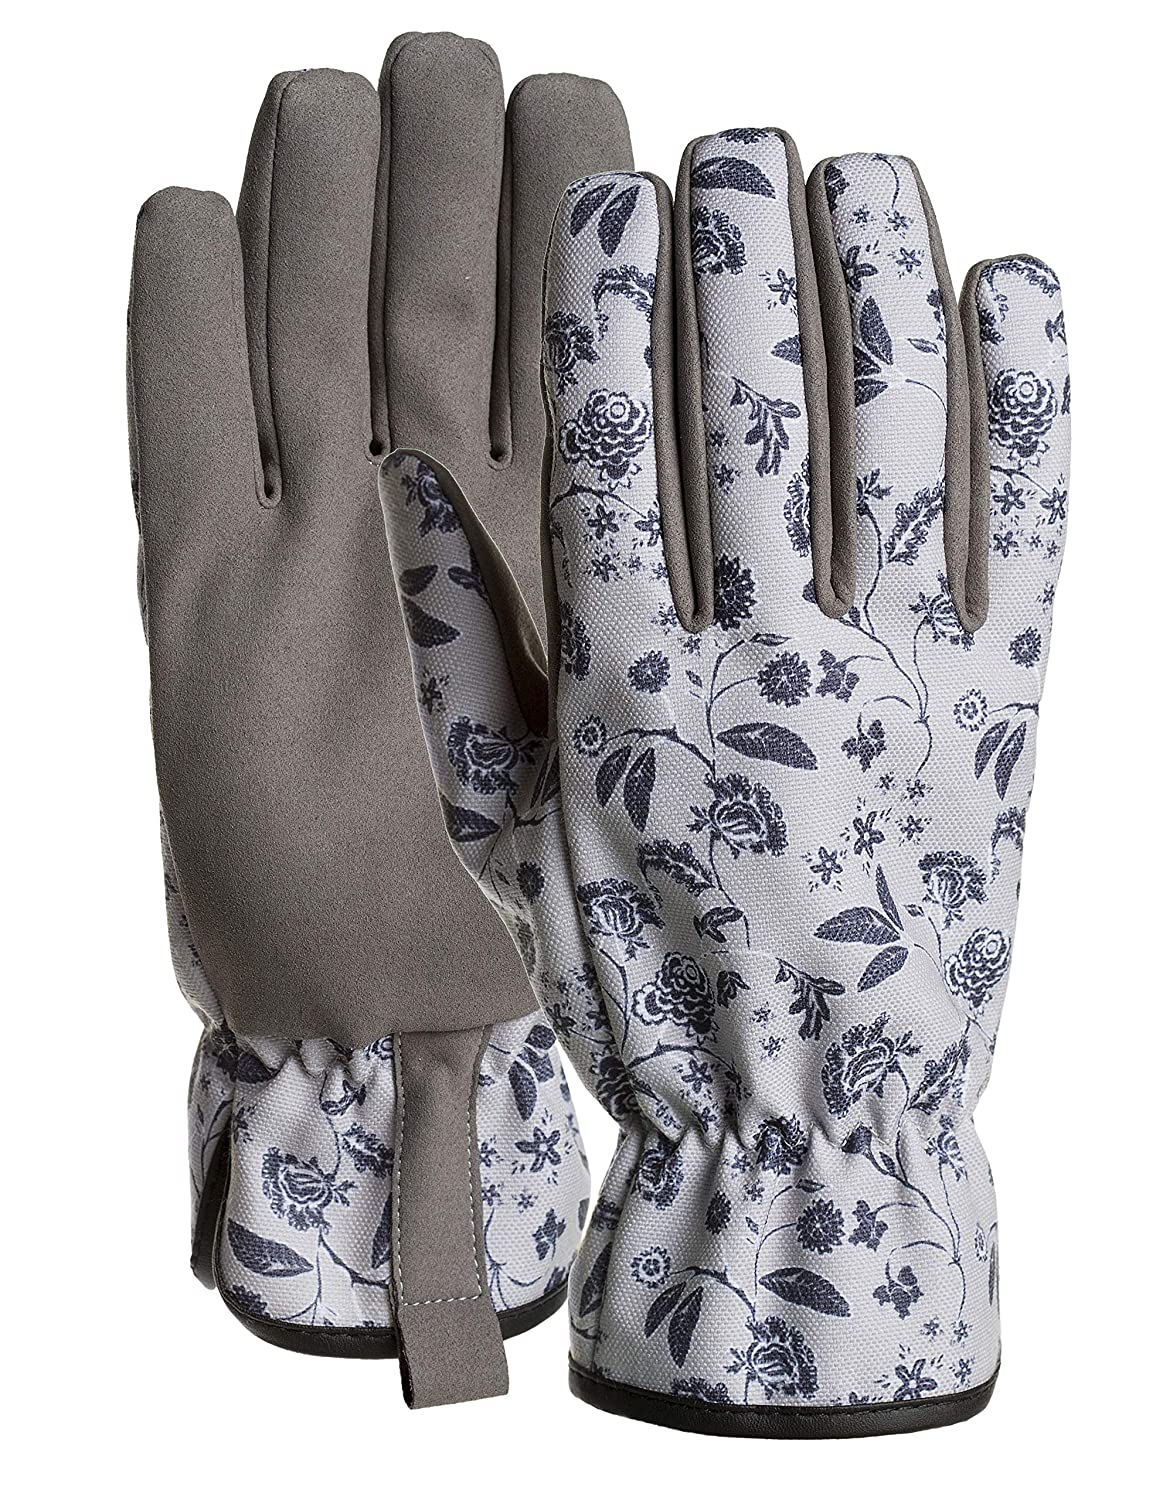 Save 40% at Kaygo Garden Gloves!